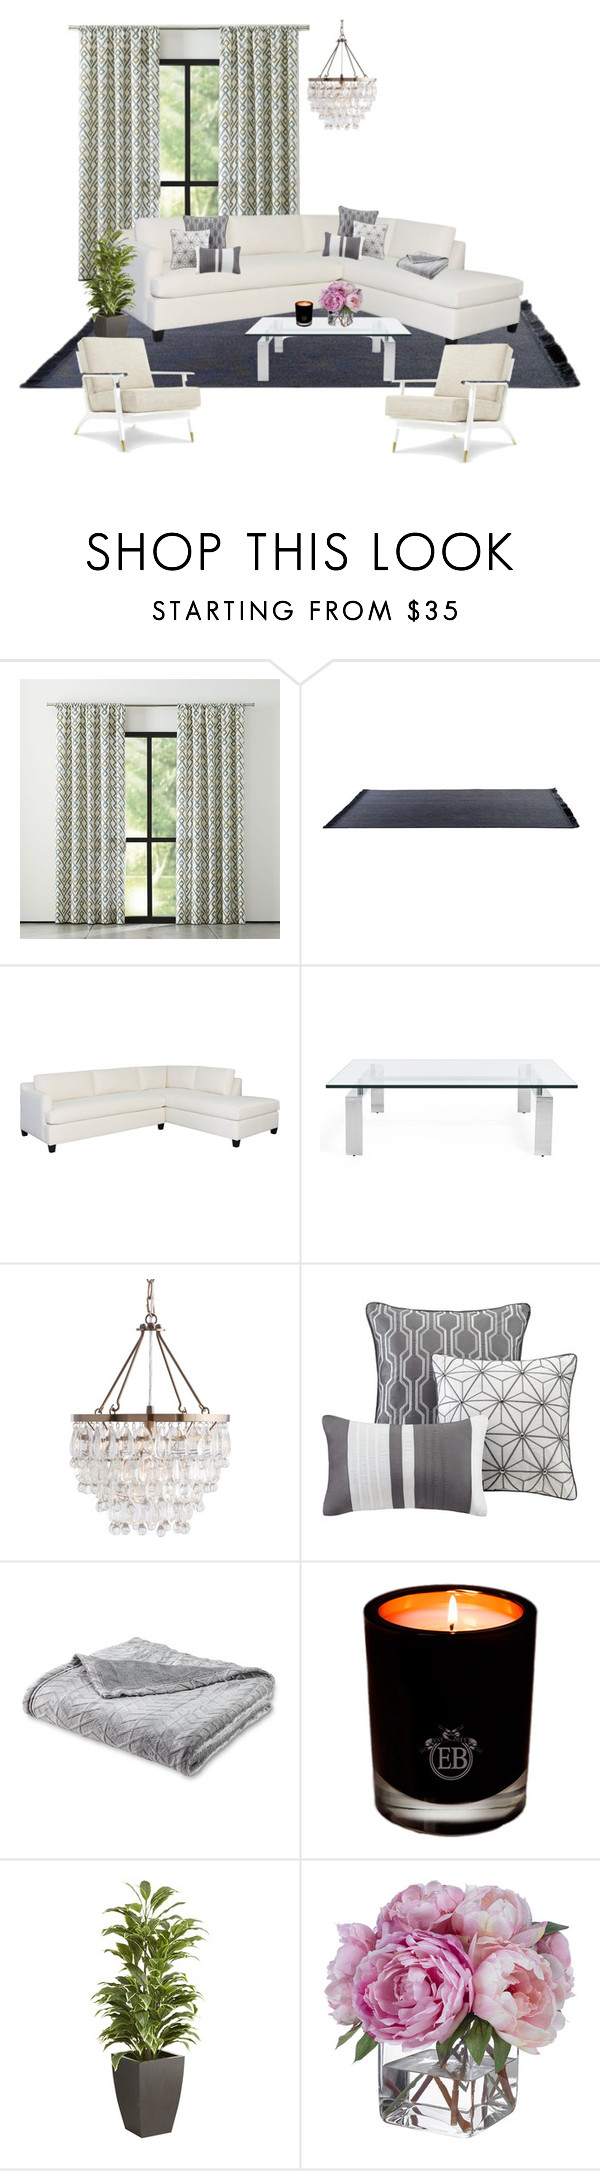 """My house pt1❤️"" by pilargabra on Polyvore featuring interior, interiors, interior design, hogar, home decor, interior decorating, Ralph Lauren Home, Madison Park, EB Florals y Pier 1 Imports"